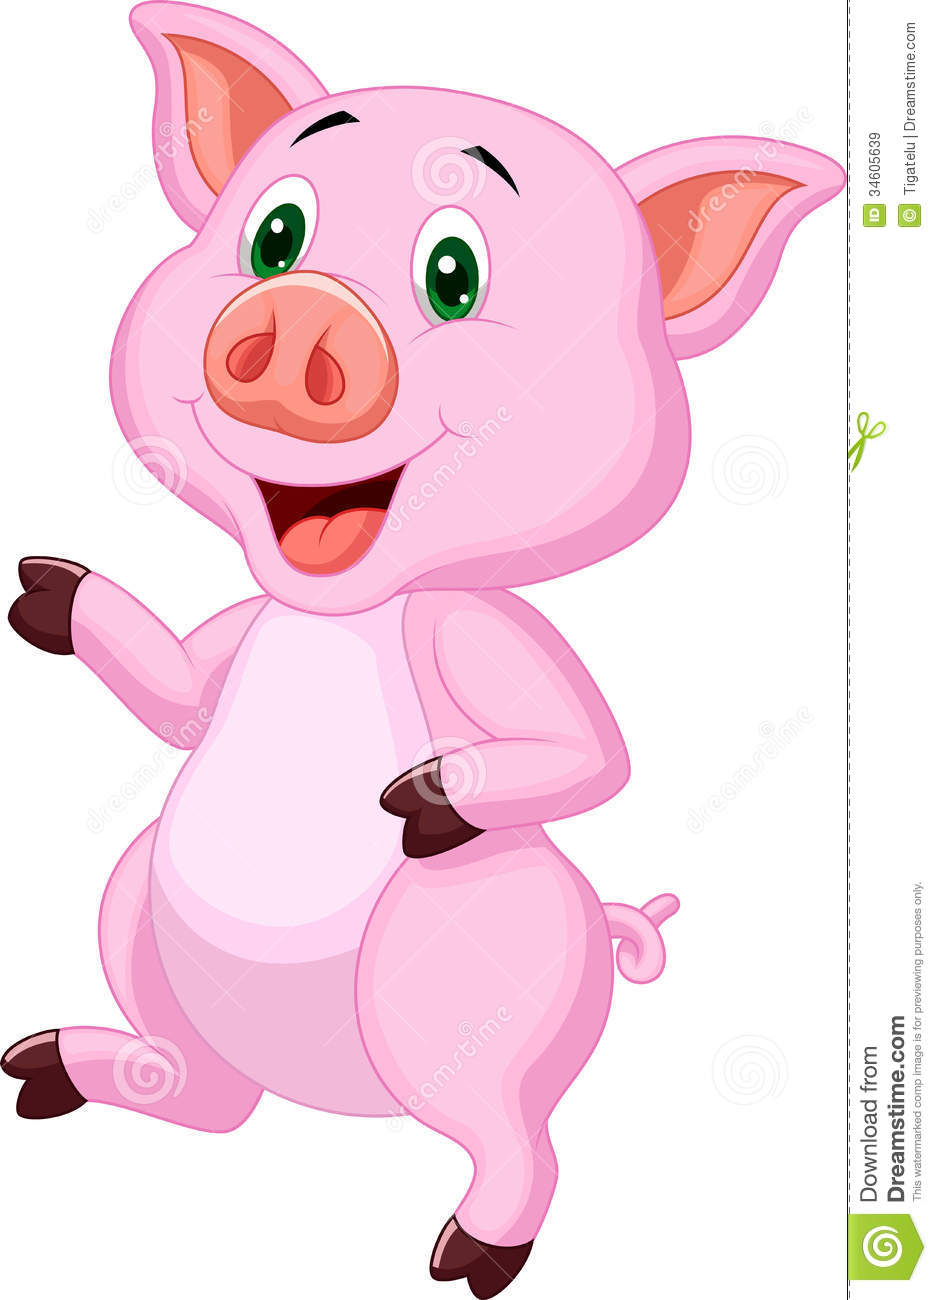 Cute Pig Cartoon Royalty Free Stock Images Image 34605639